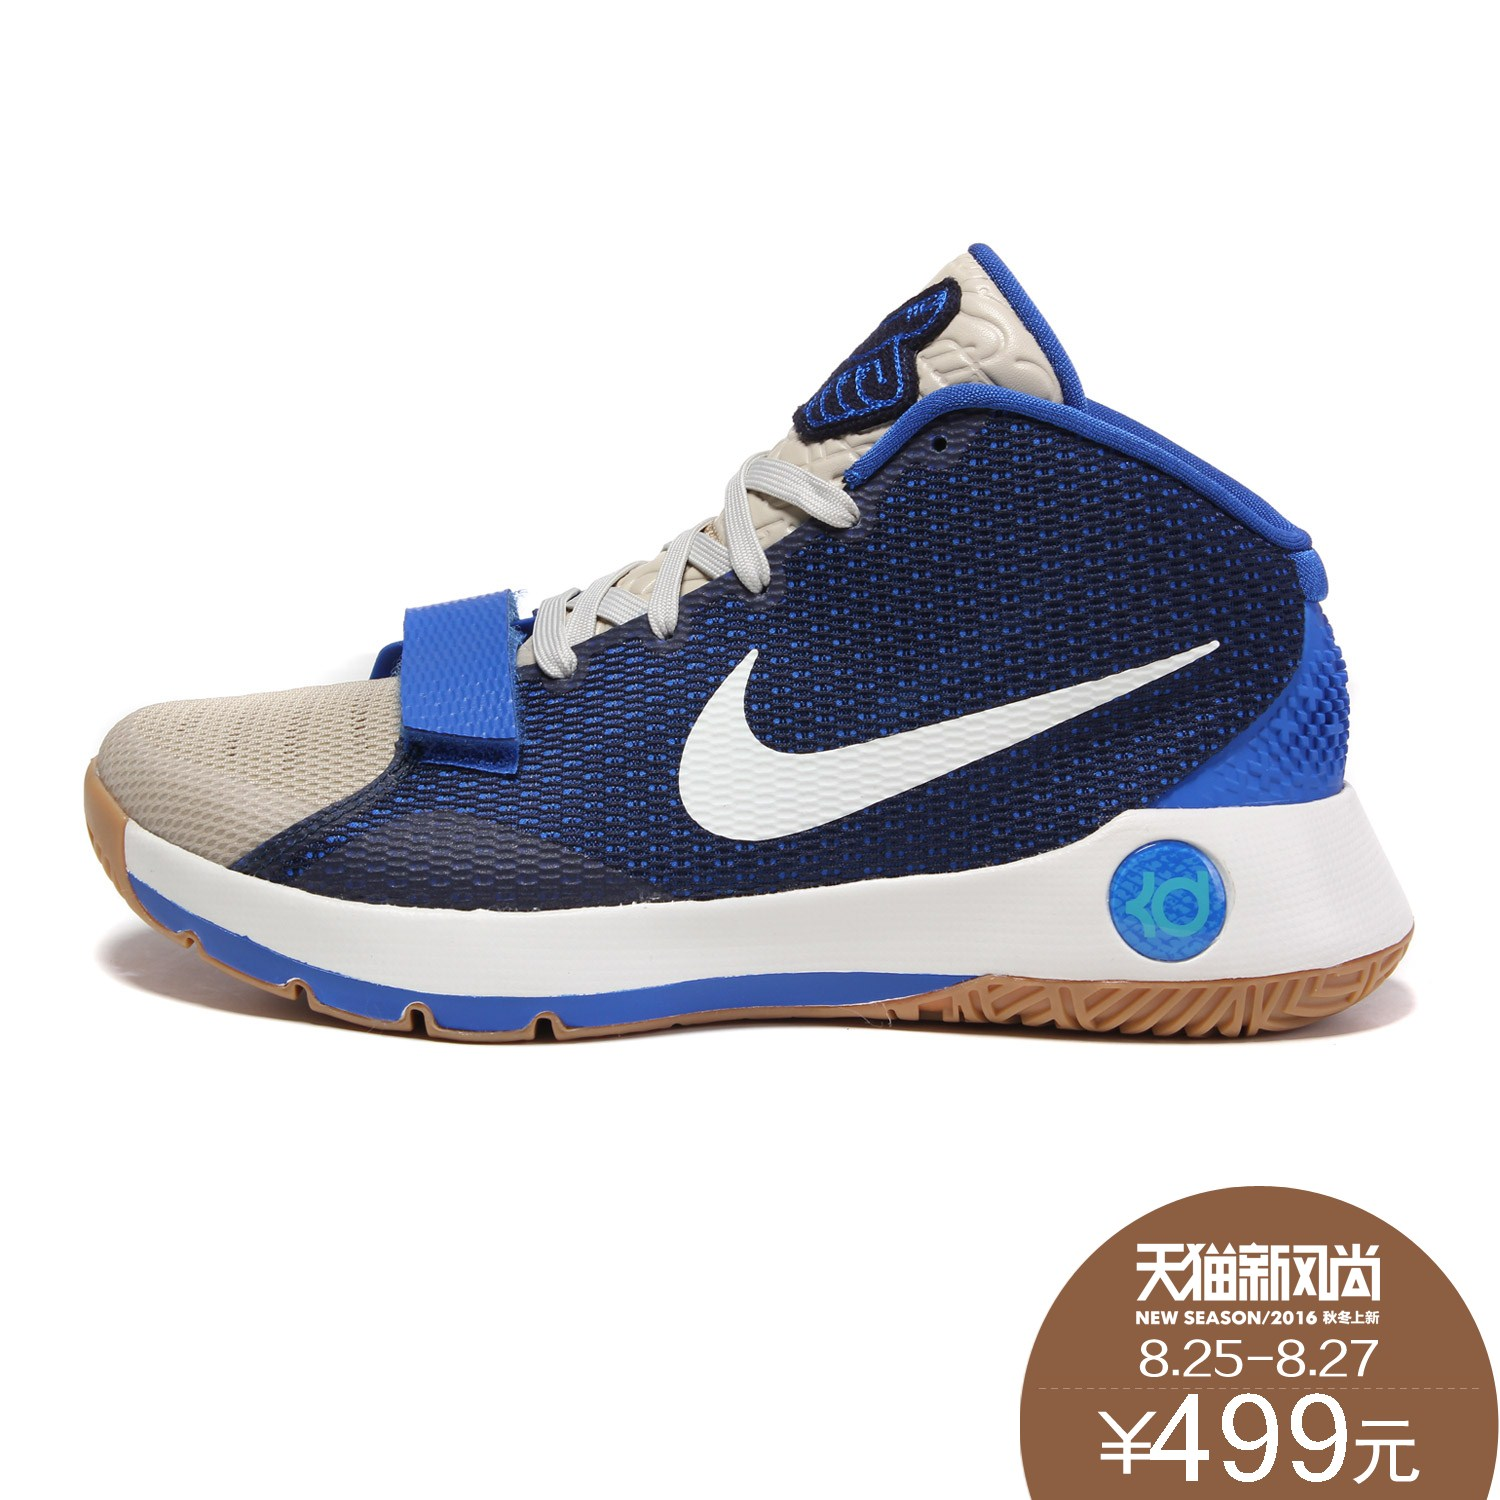 e05ecc8e60ca Get Quotations · Nike nike men s basketball shoes durant kd series to help  sports shoes 812570-090 hot